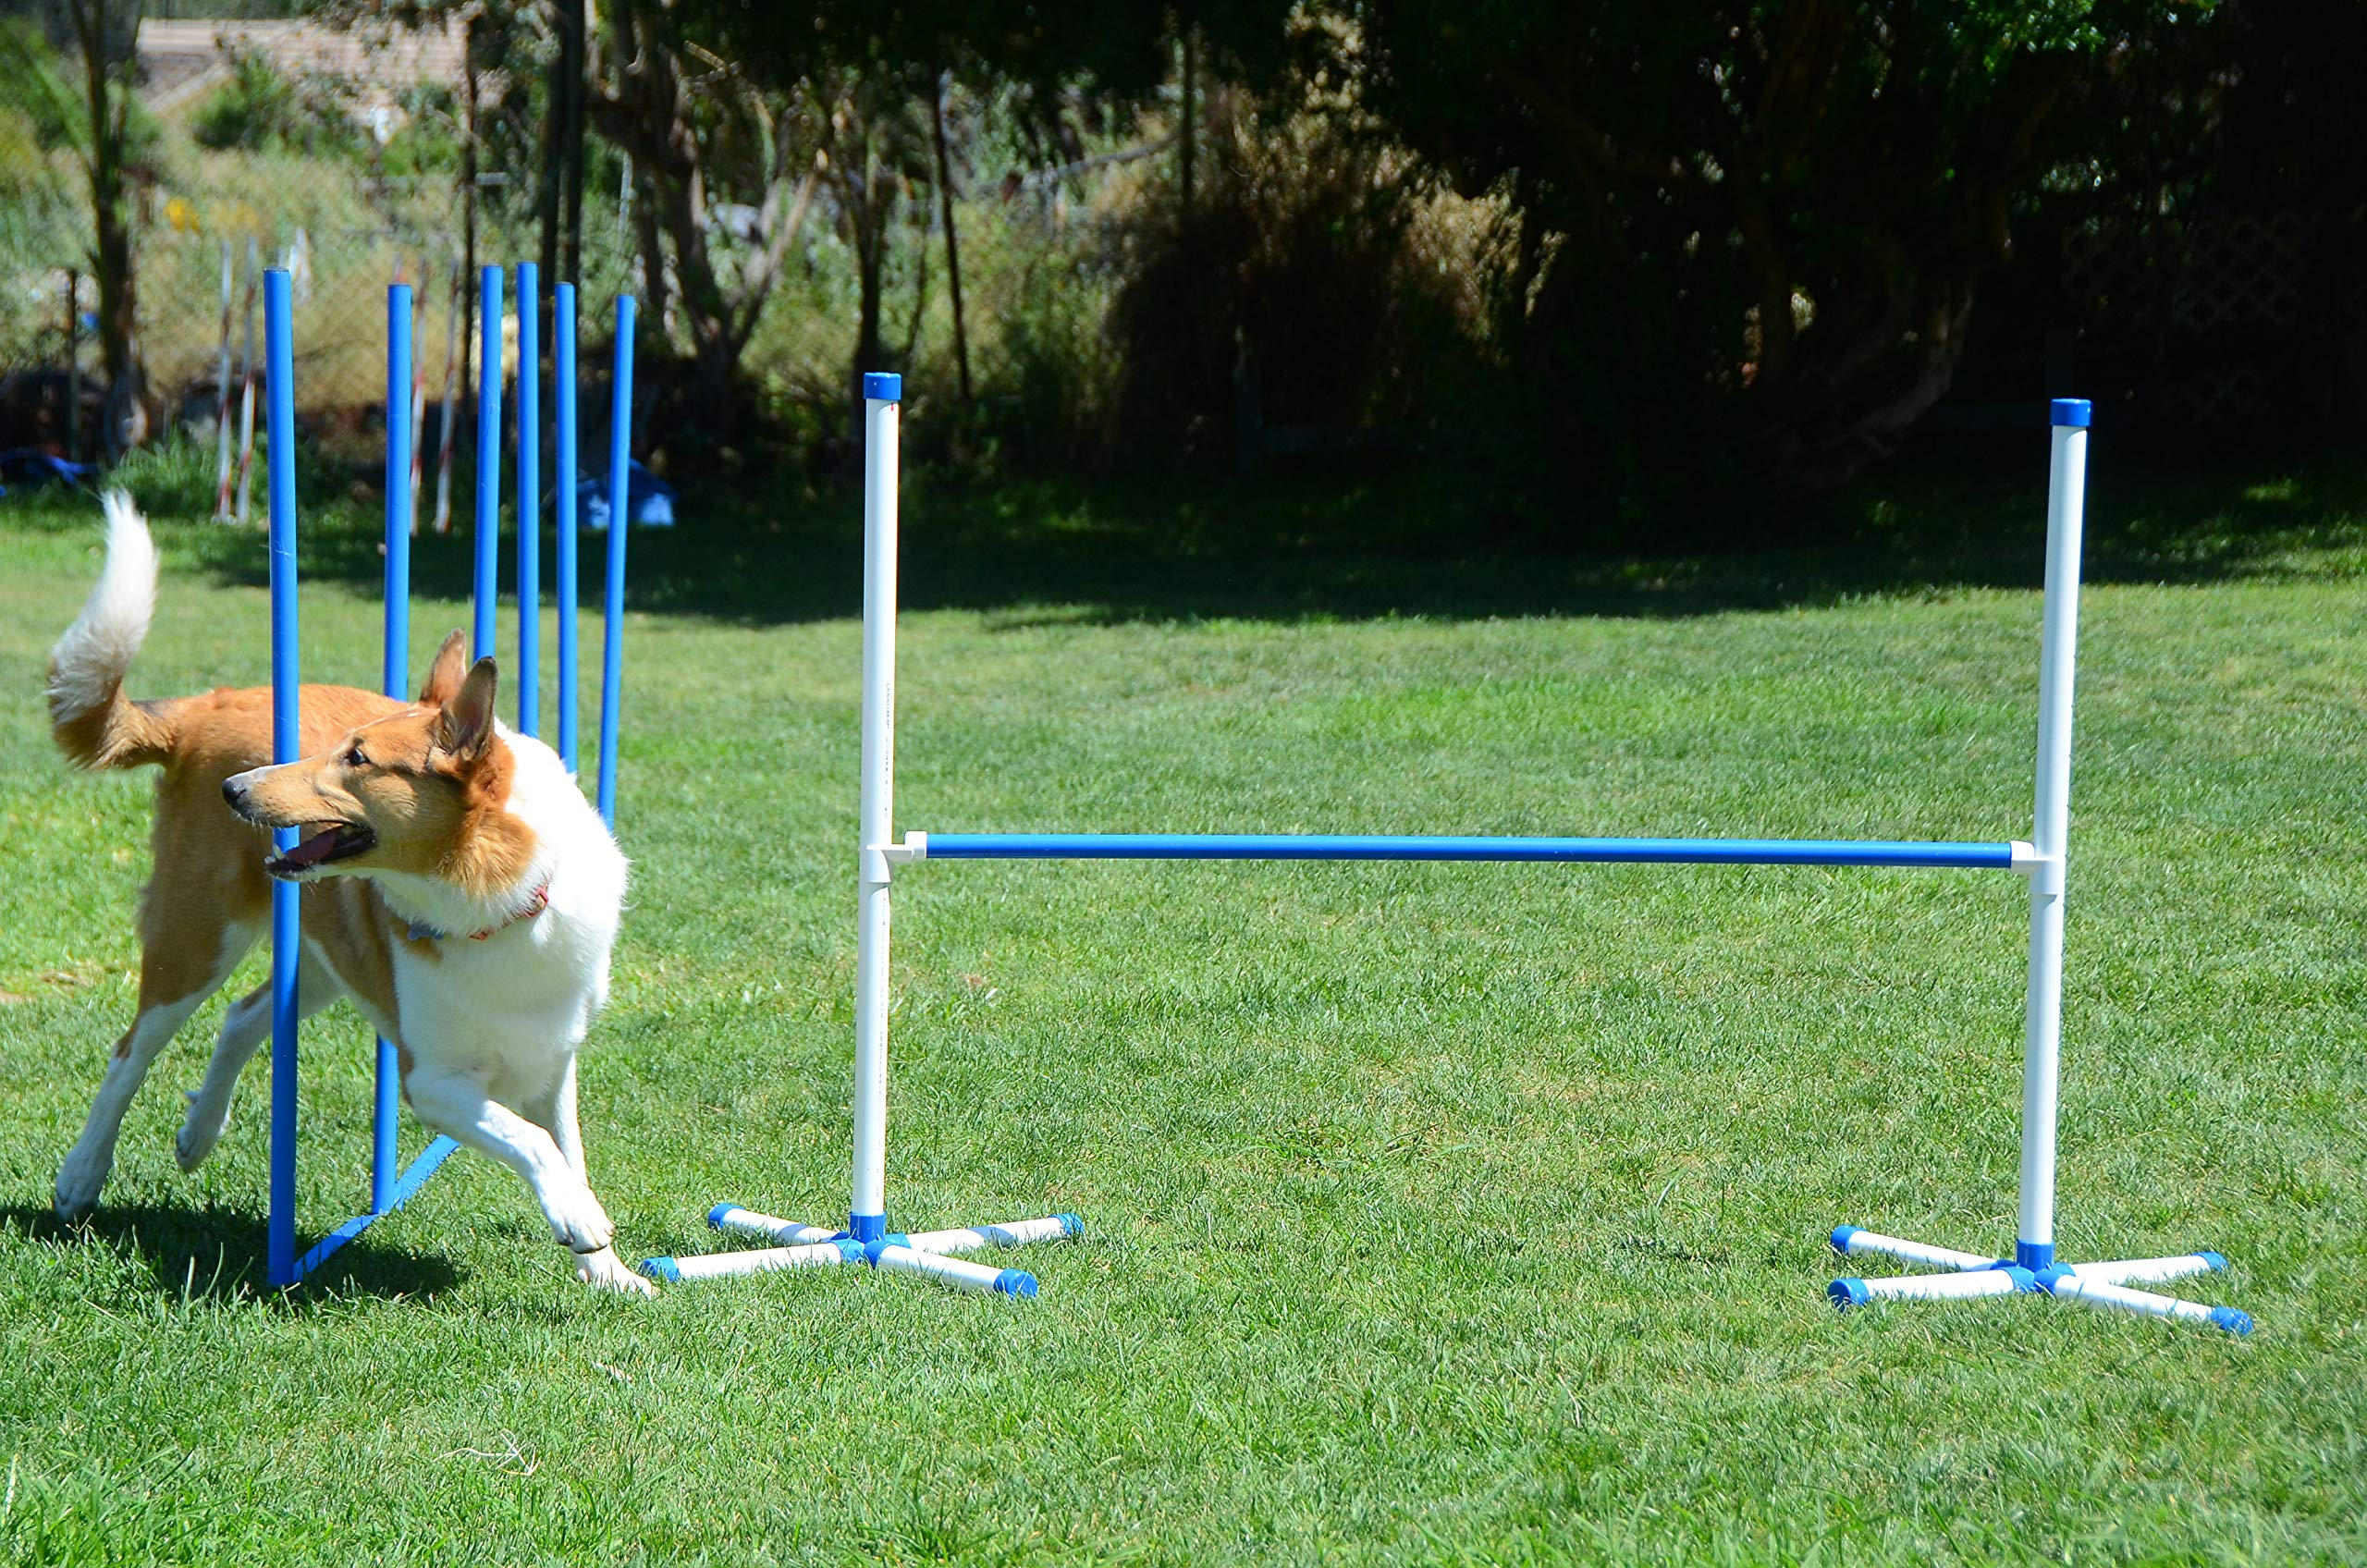 Triple A Dogs Combo 1 Dog Agility Jump/6 Dog Agility Weave Poles Buy Combo and Save, Dog Training, Dog Jumps, Dog Hurdles, Agility Equipment, by Triple A Dogs